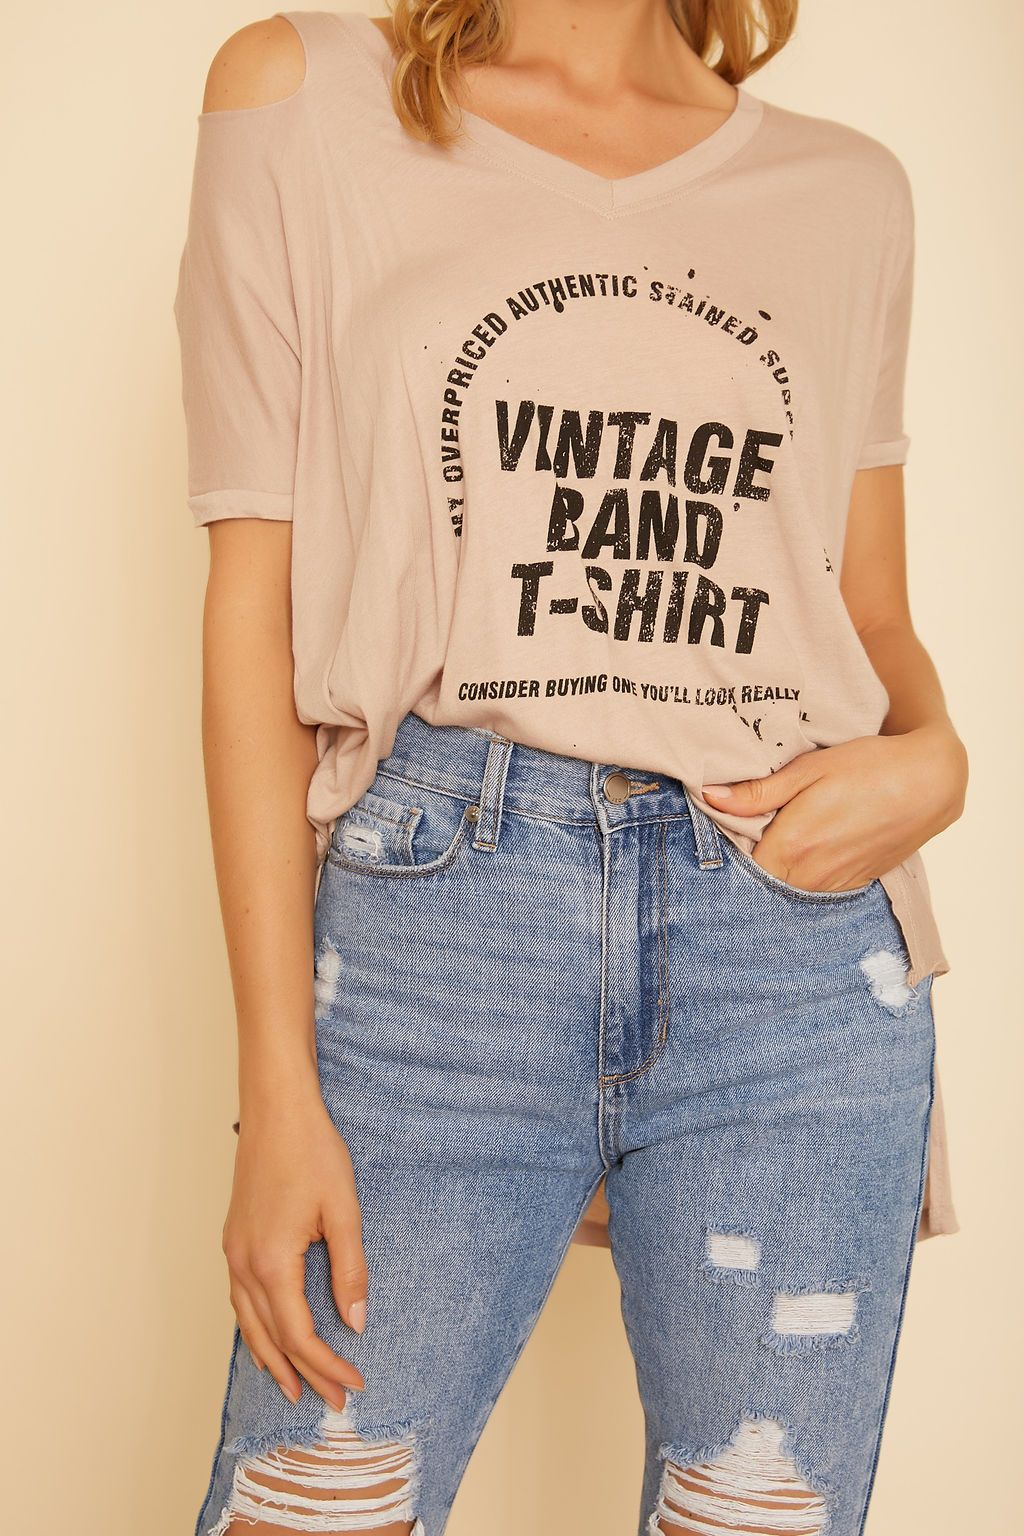 Lizzie Vintage Band T-Shirt - wearNYLA